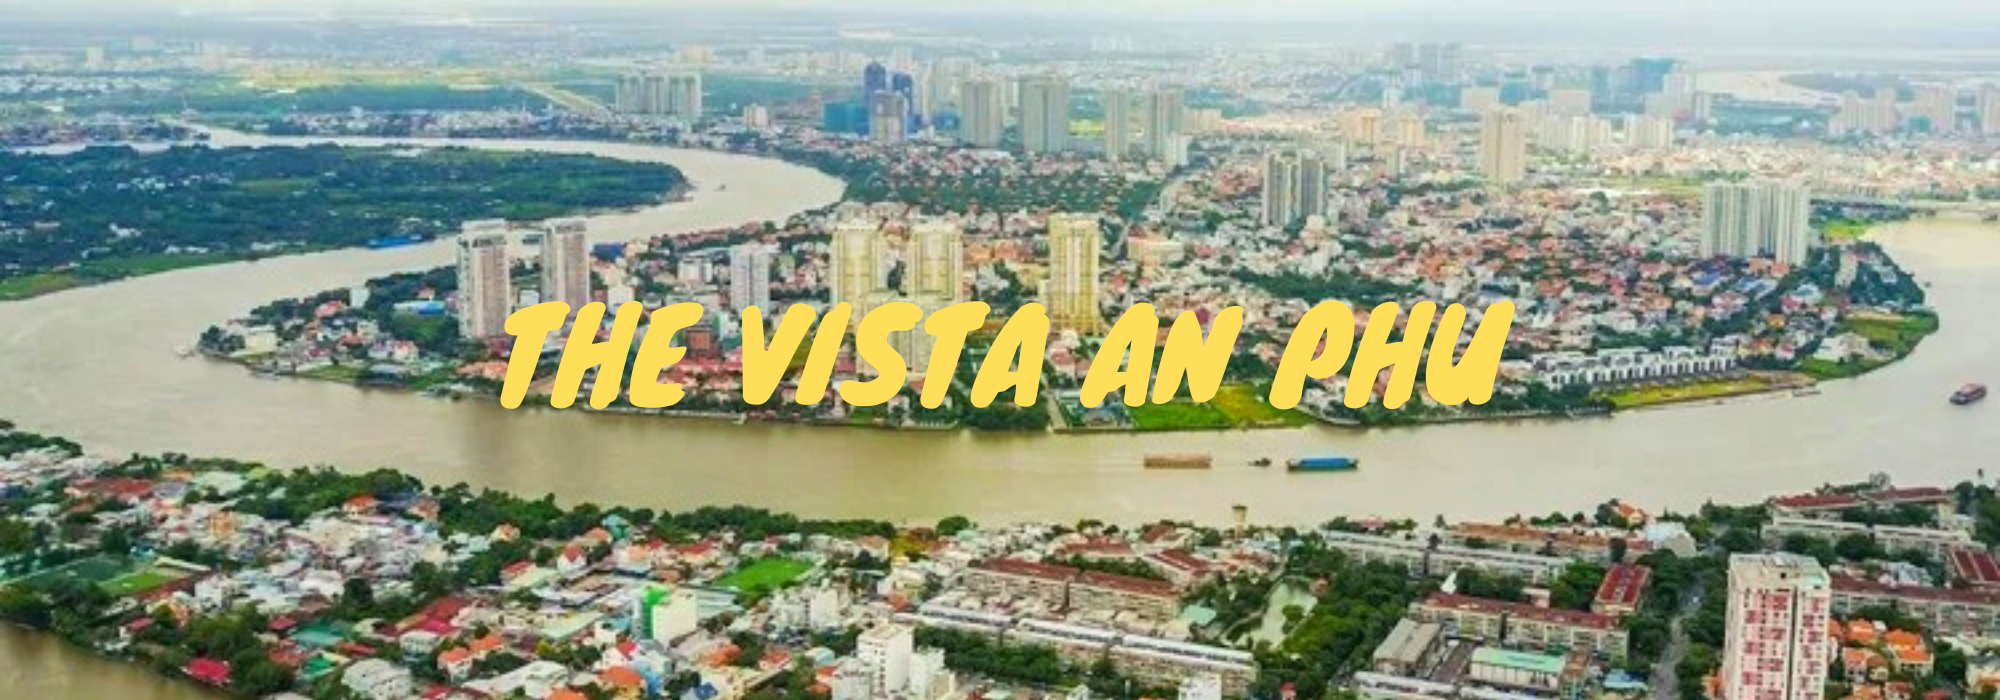 The Vista An Phu 3 Bedroom For Sale-River View